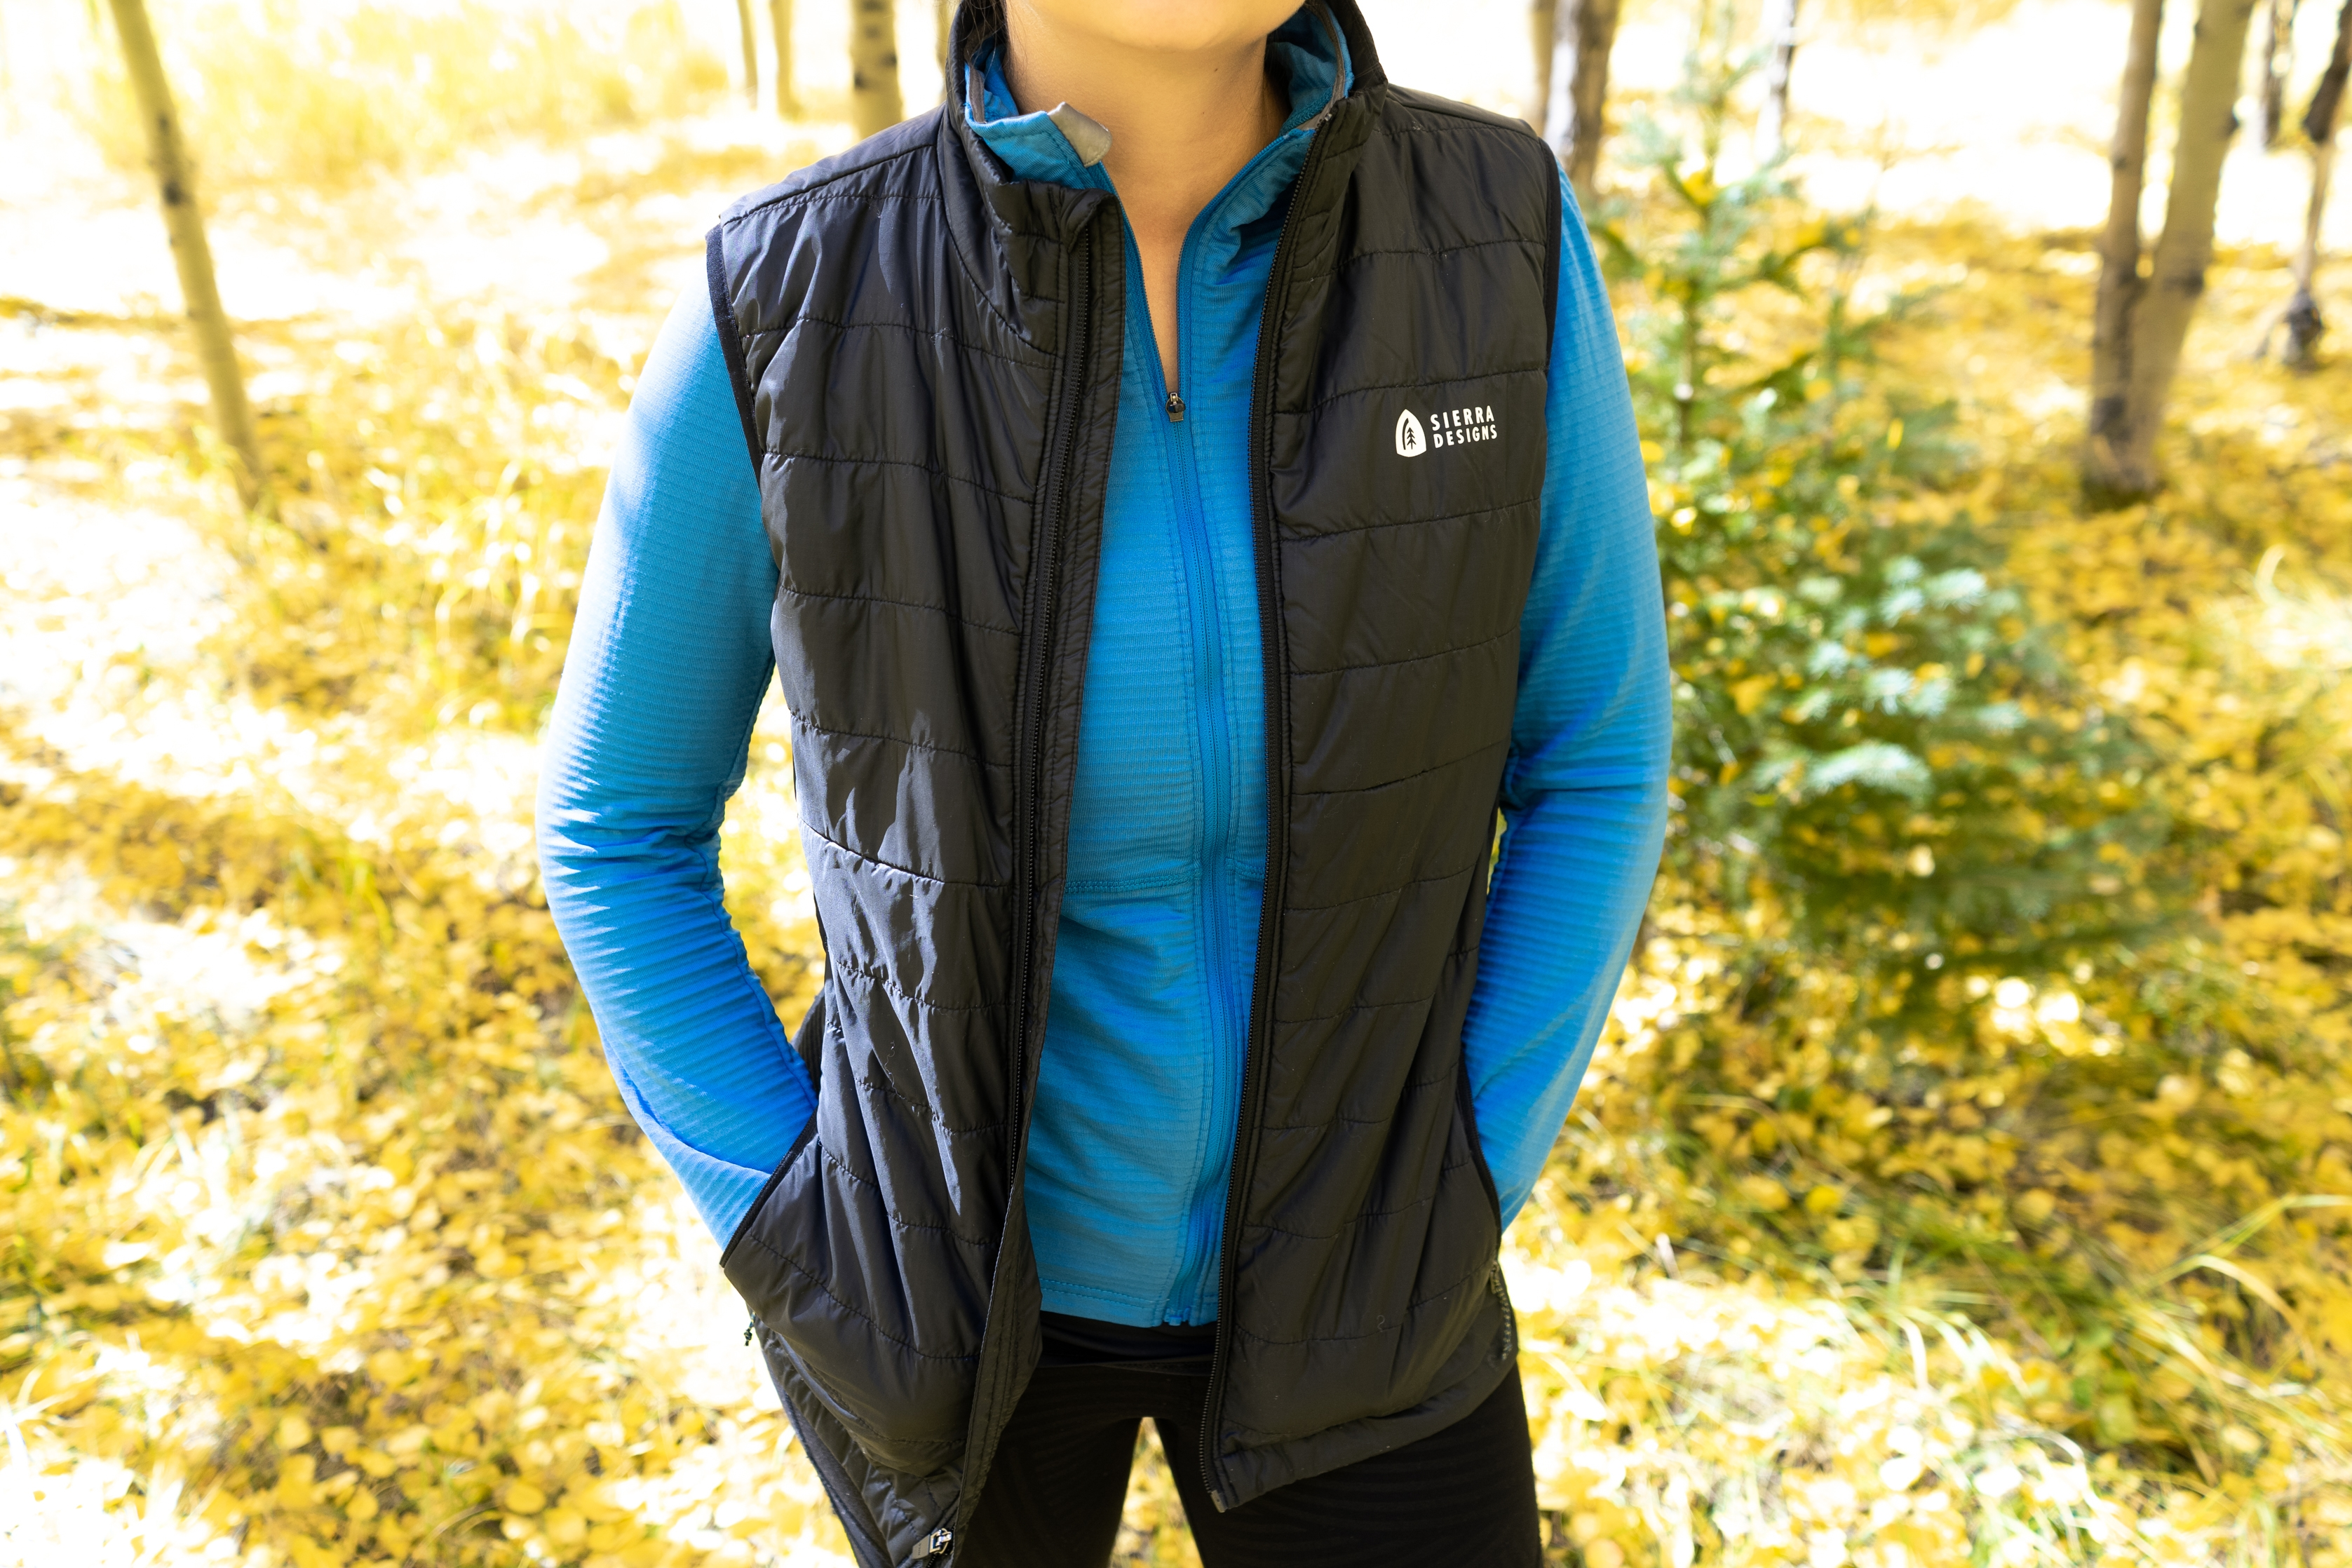 Gear Review: Sierra Designs Tuolumne Vest and Cold Canyon Fleece - The Trek